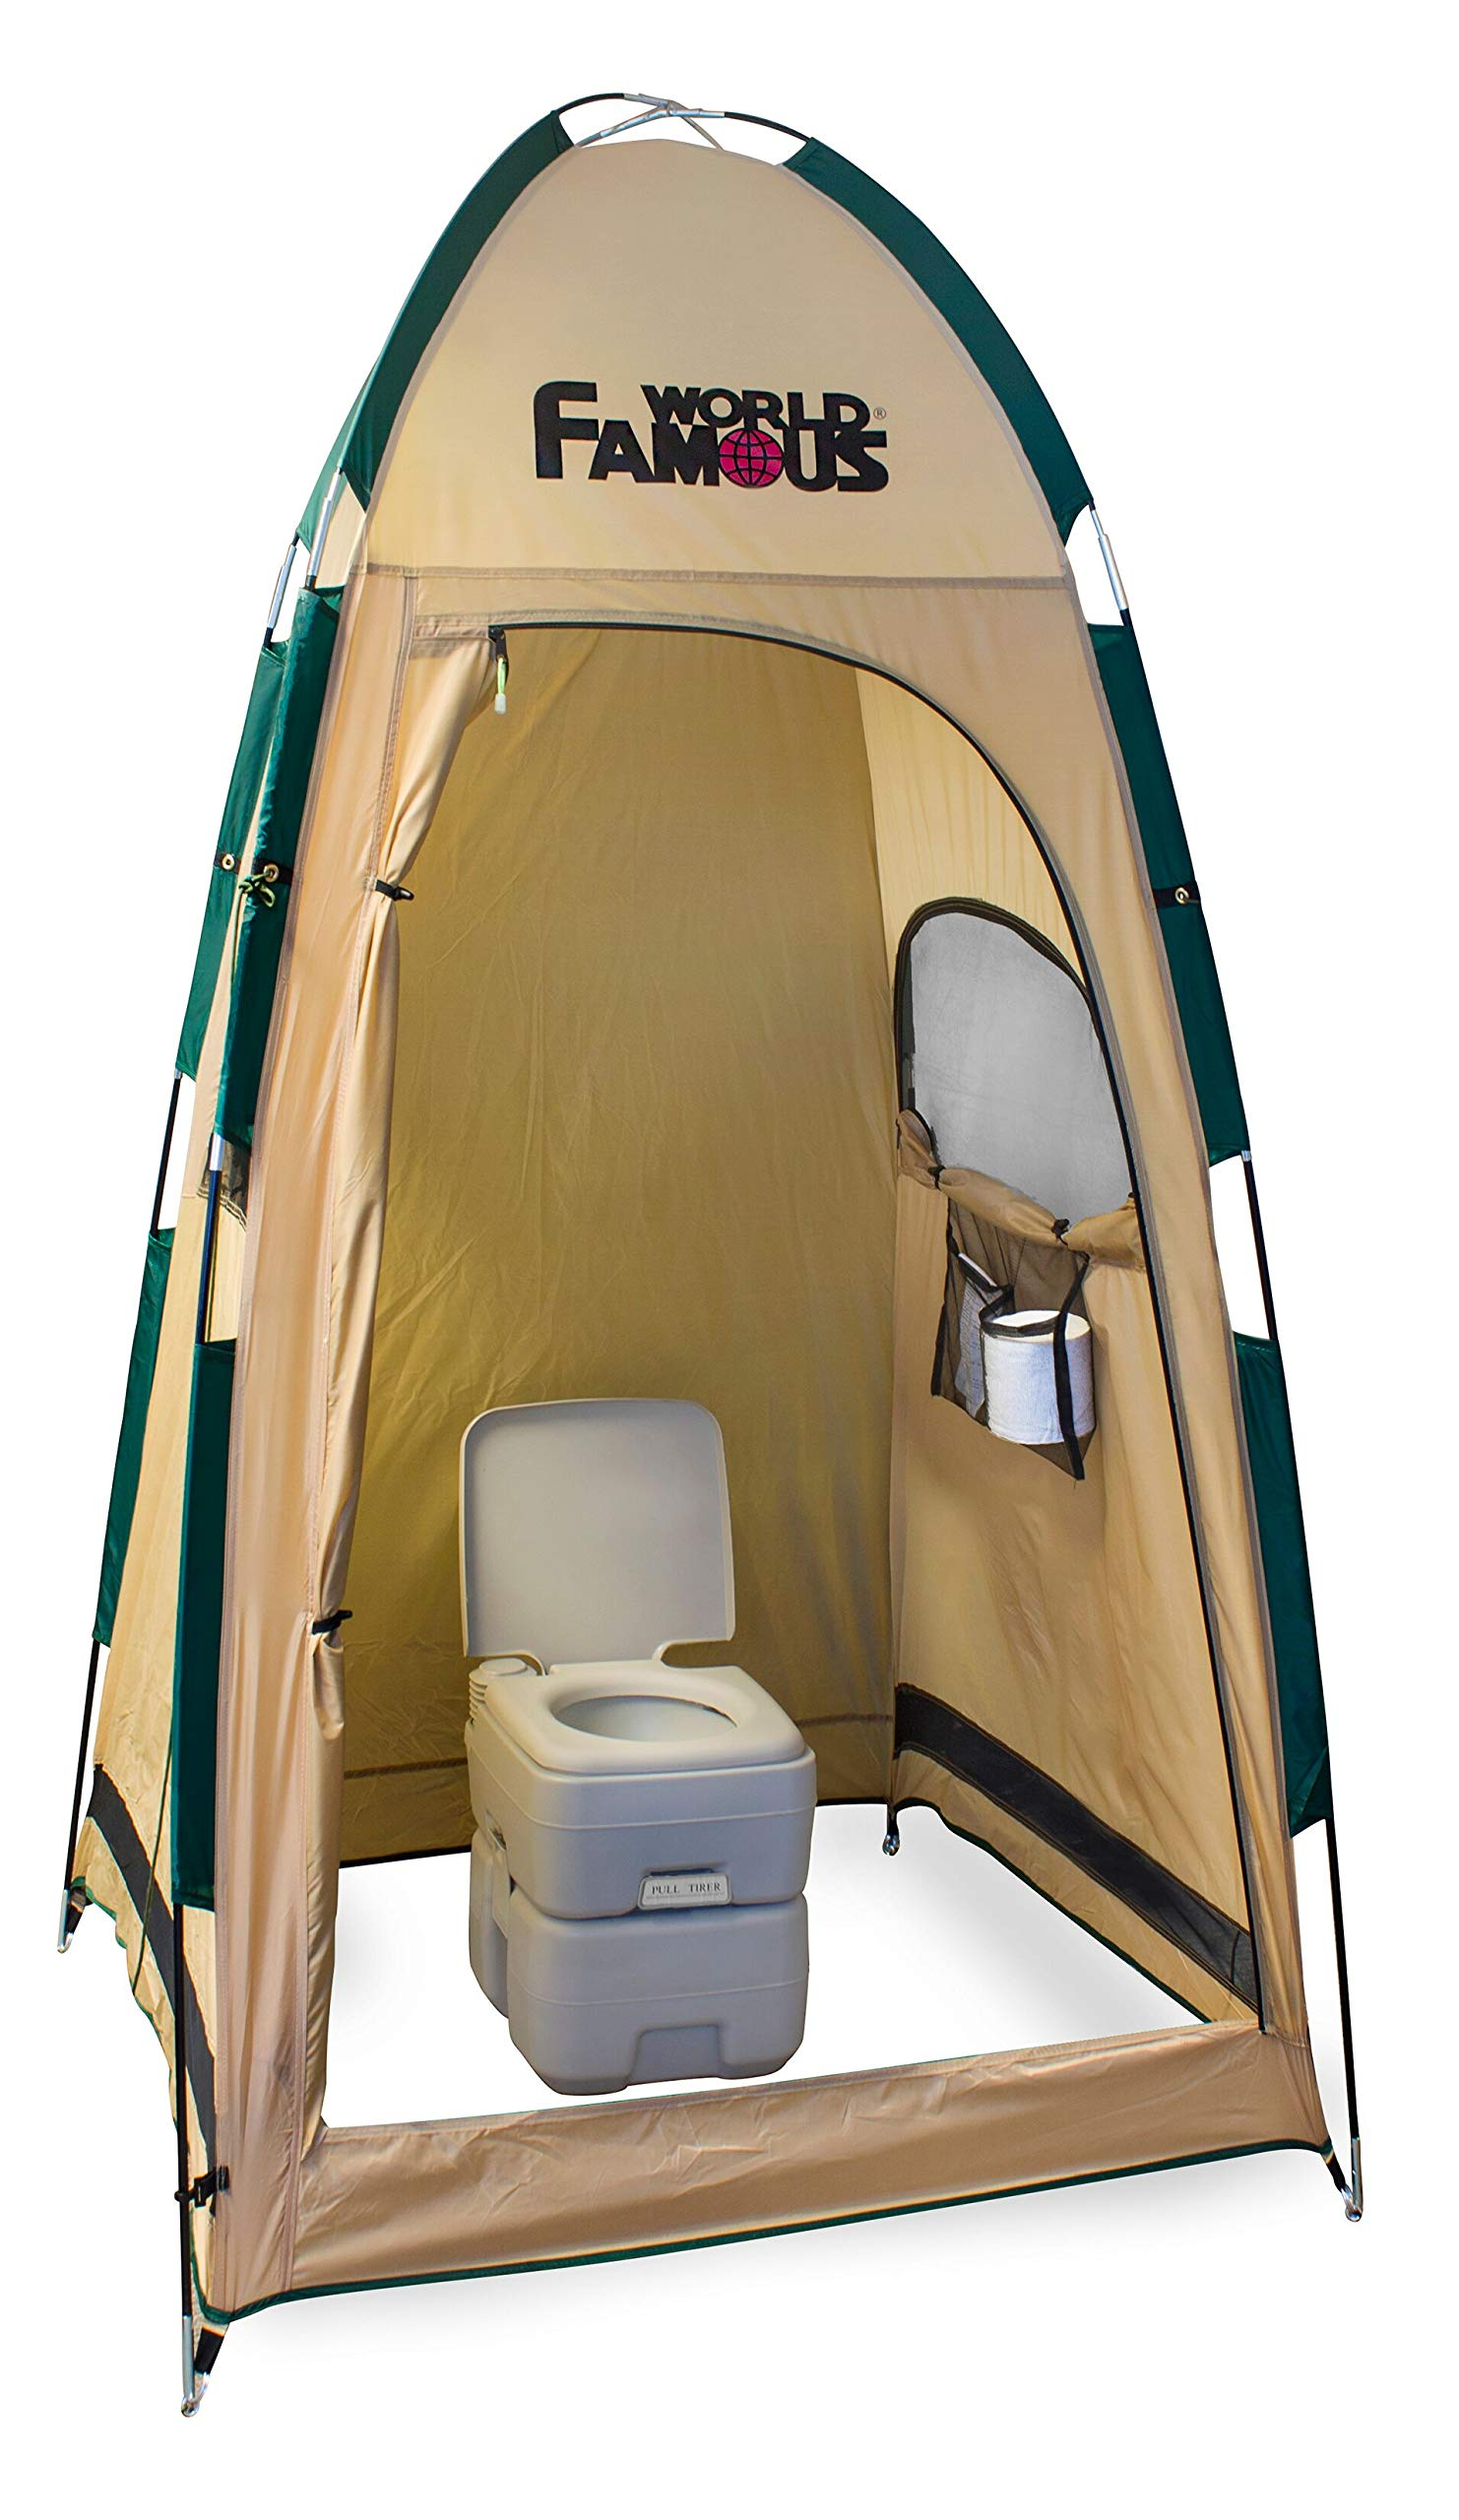 World Famous Porta-Privy Privacy Bathroom Tent Shelter by World Famous